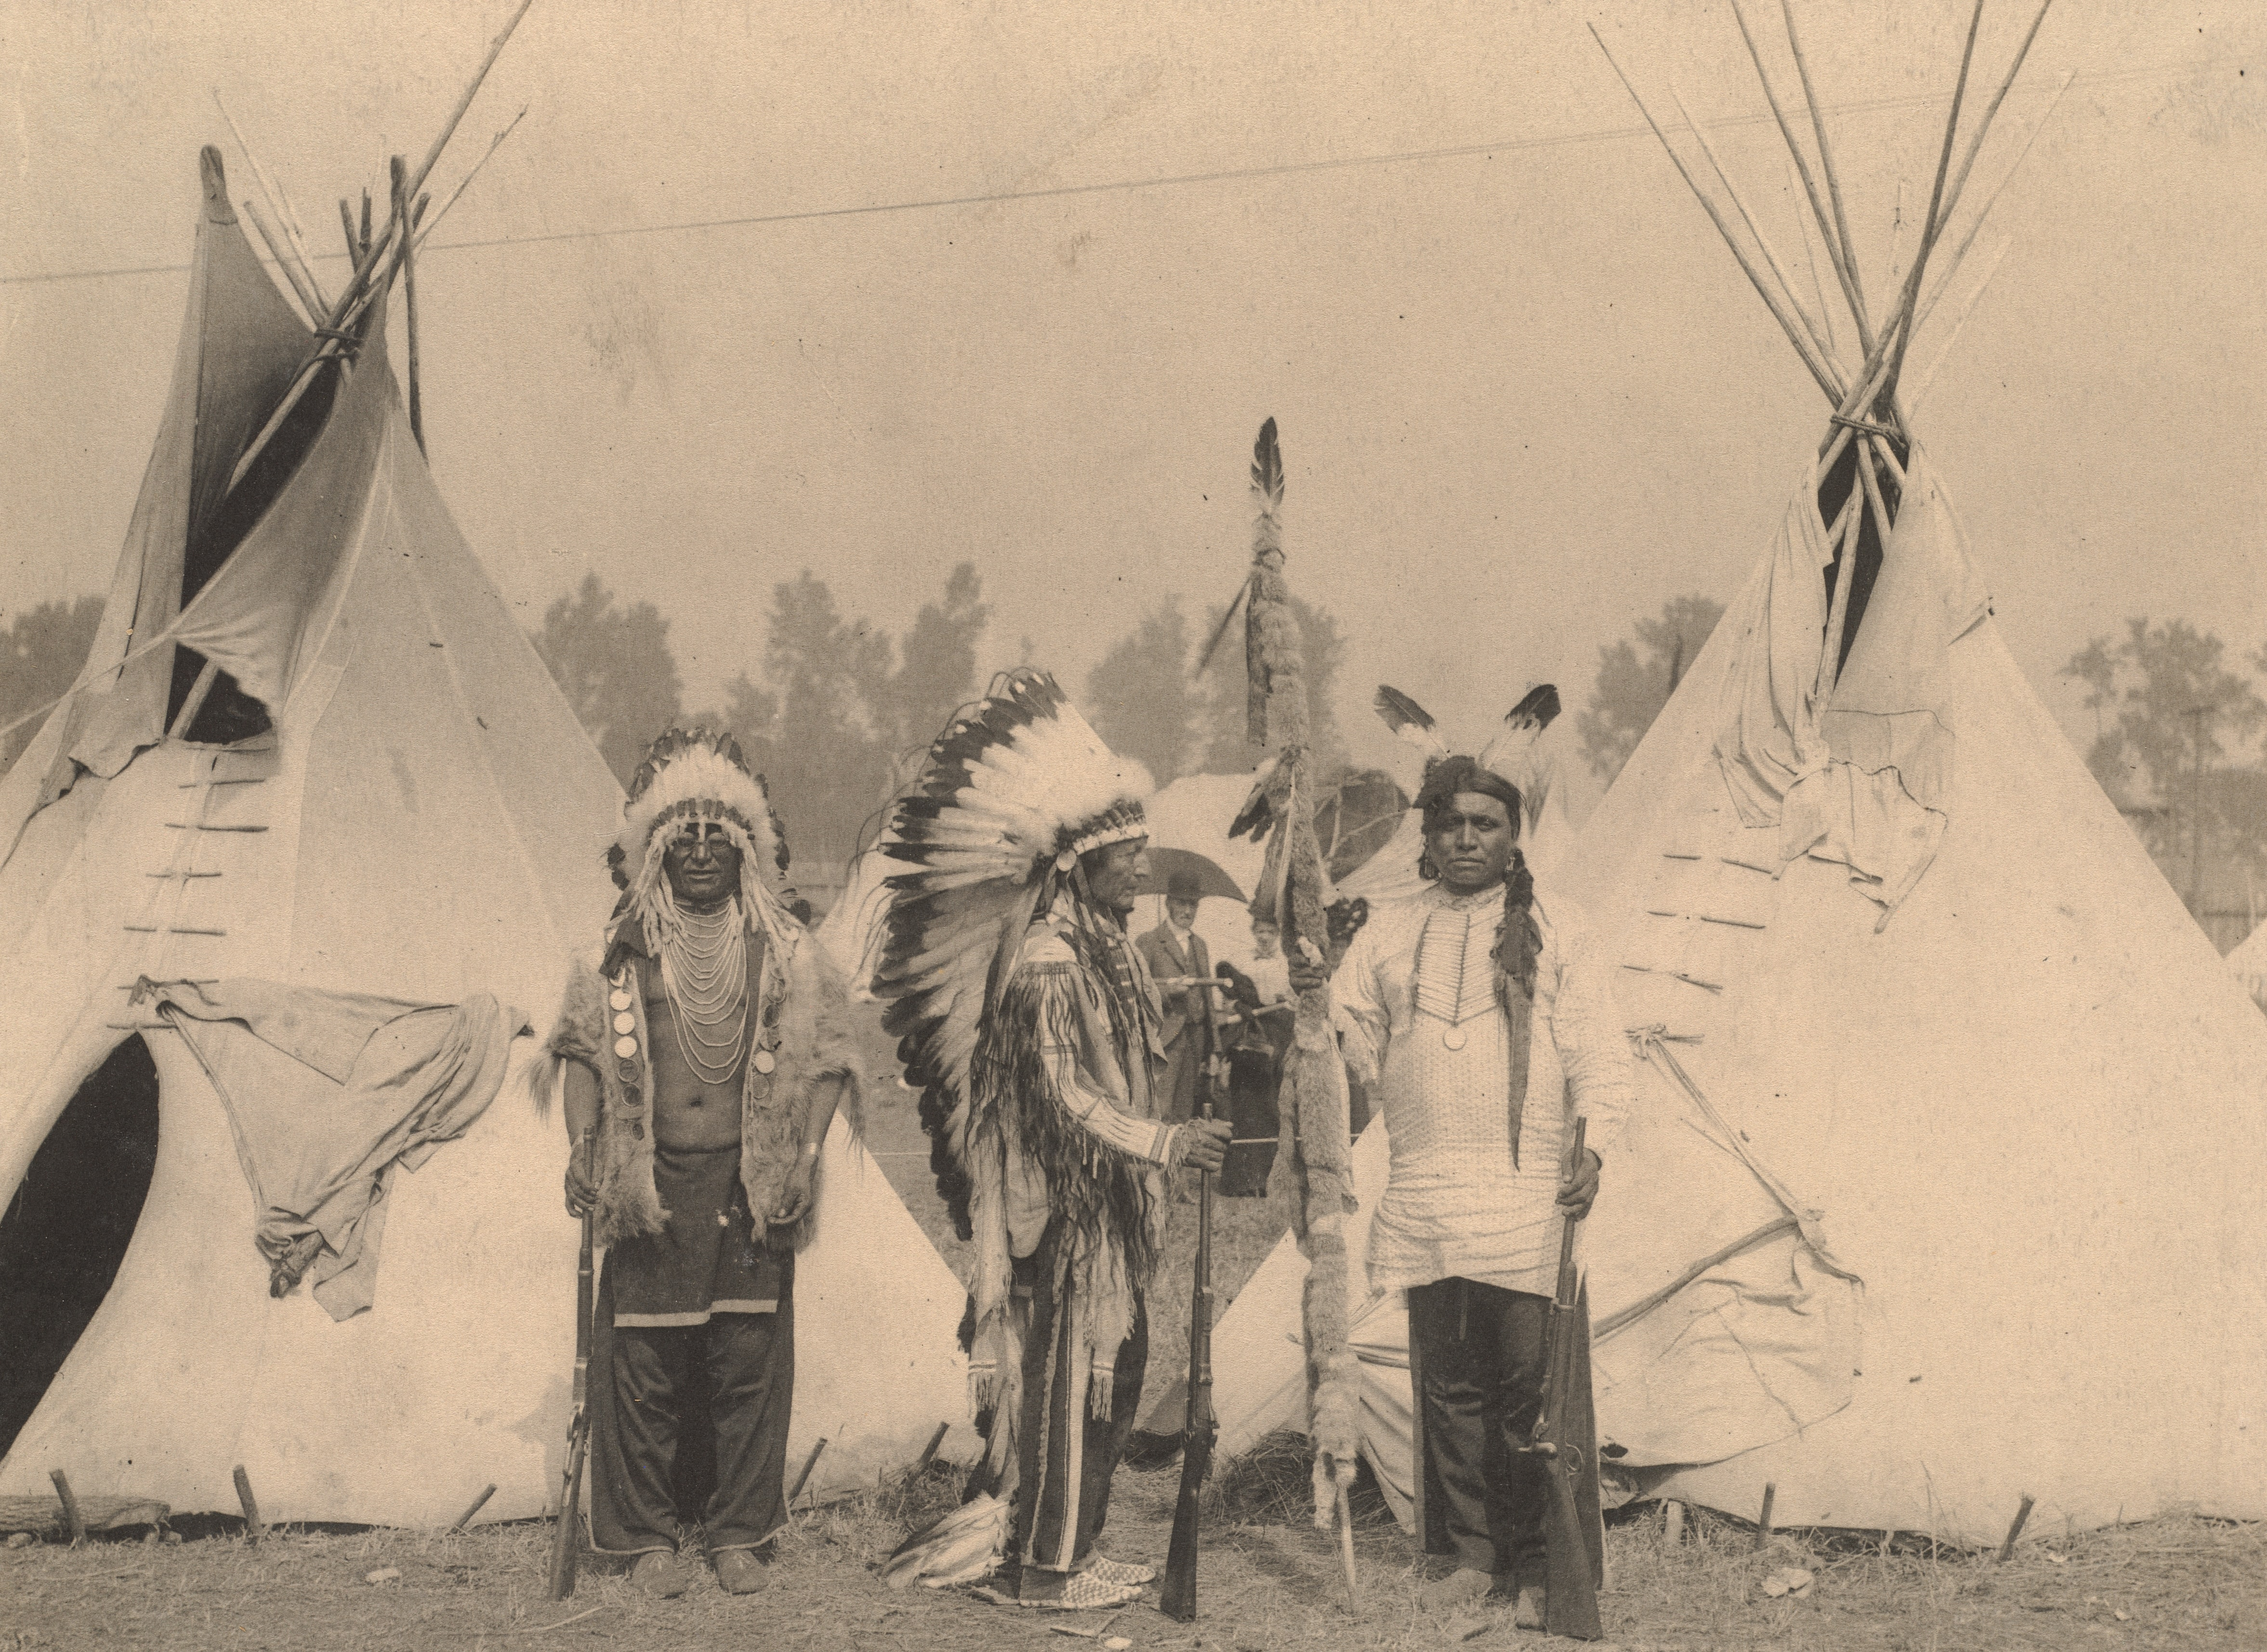 Explore the past and present of Native peoples this Native American Heritage Month with CCPL